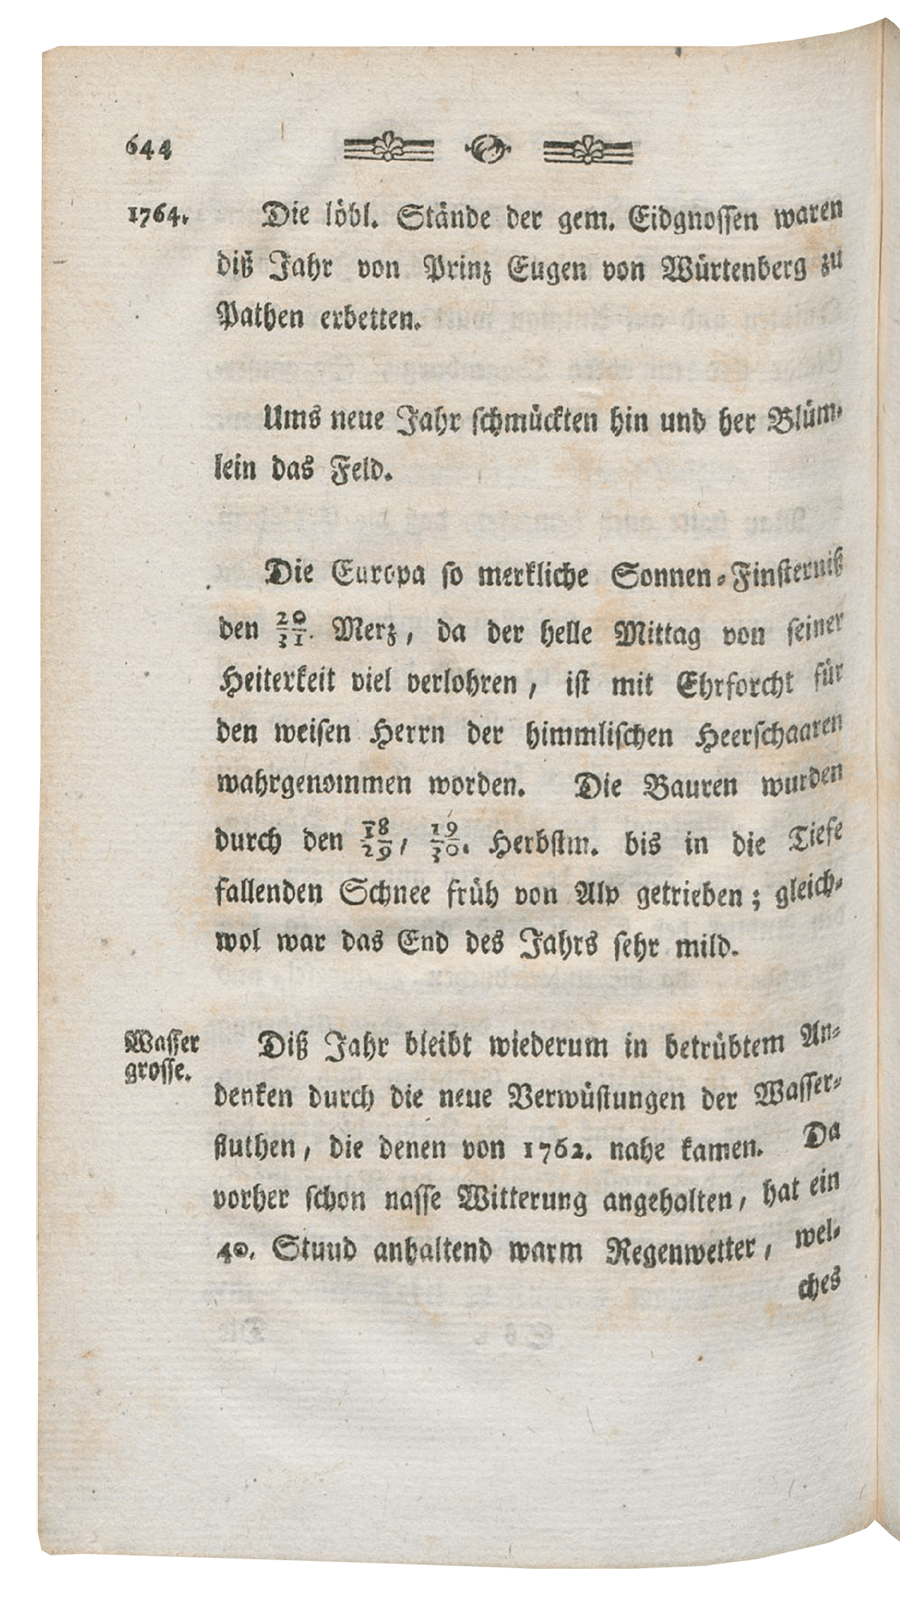 1764_1774_TrÅmpi_Glarner-Chronick_644-646-1